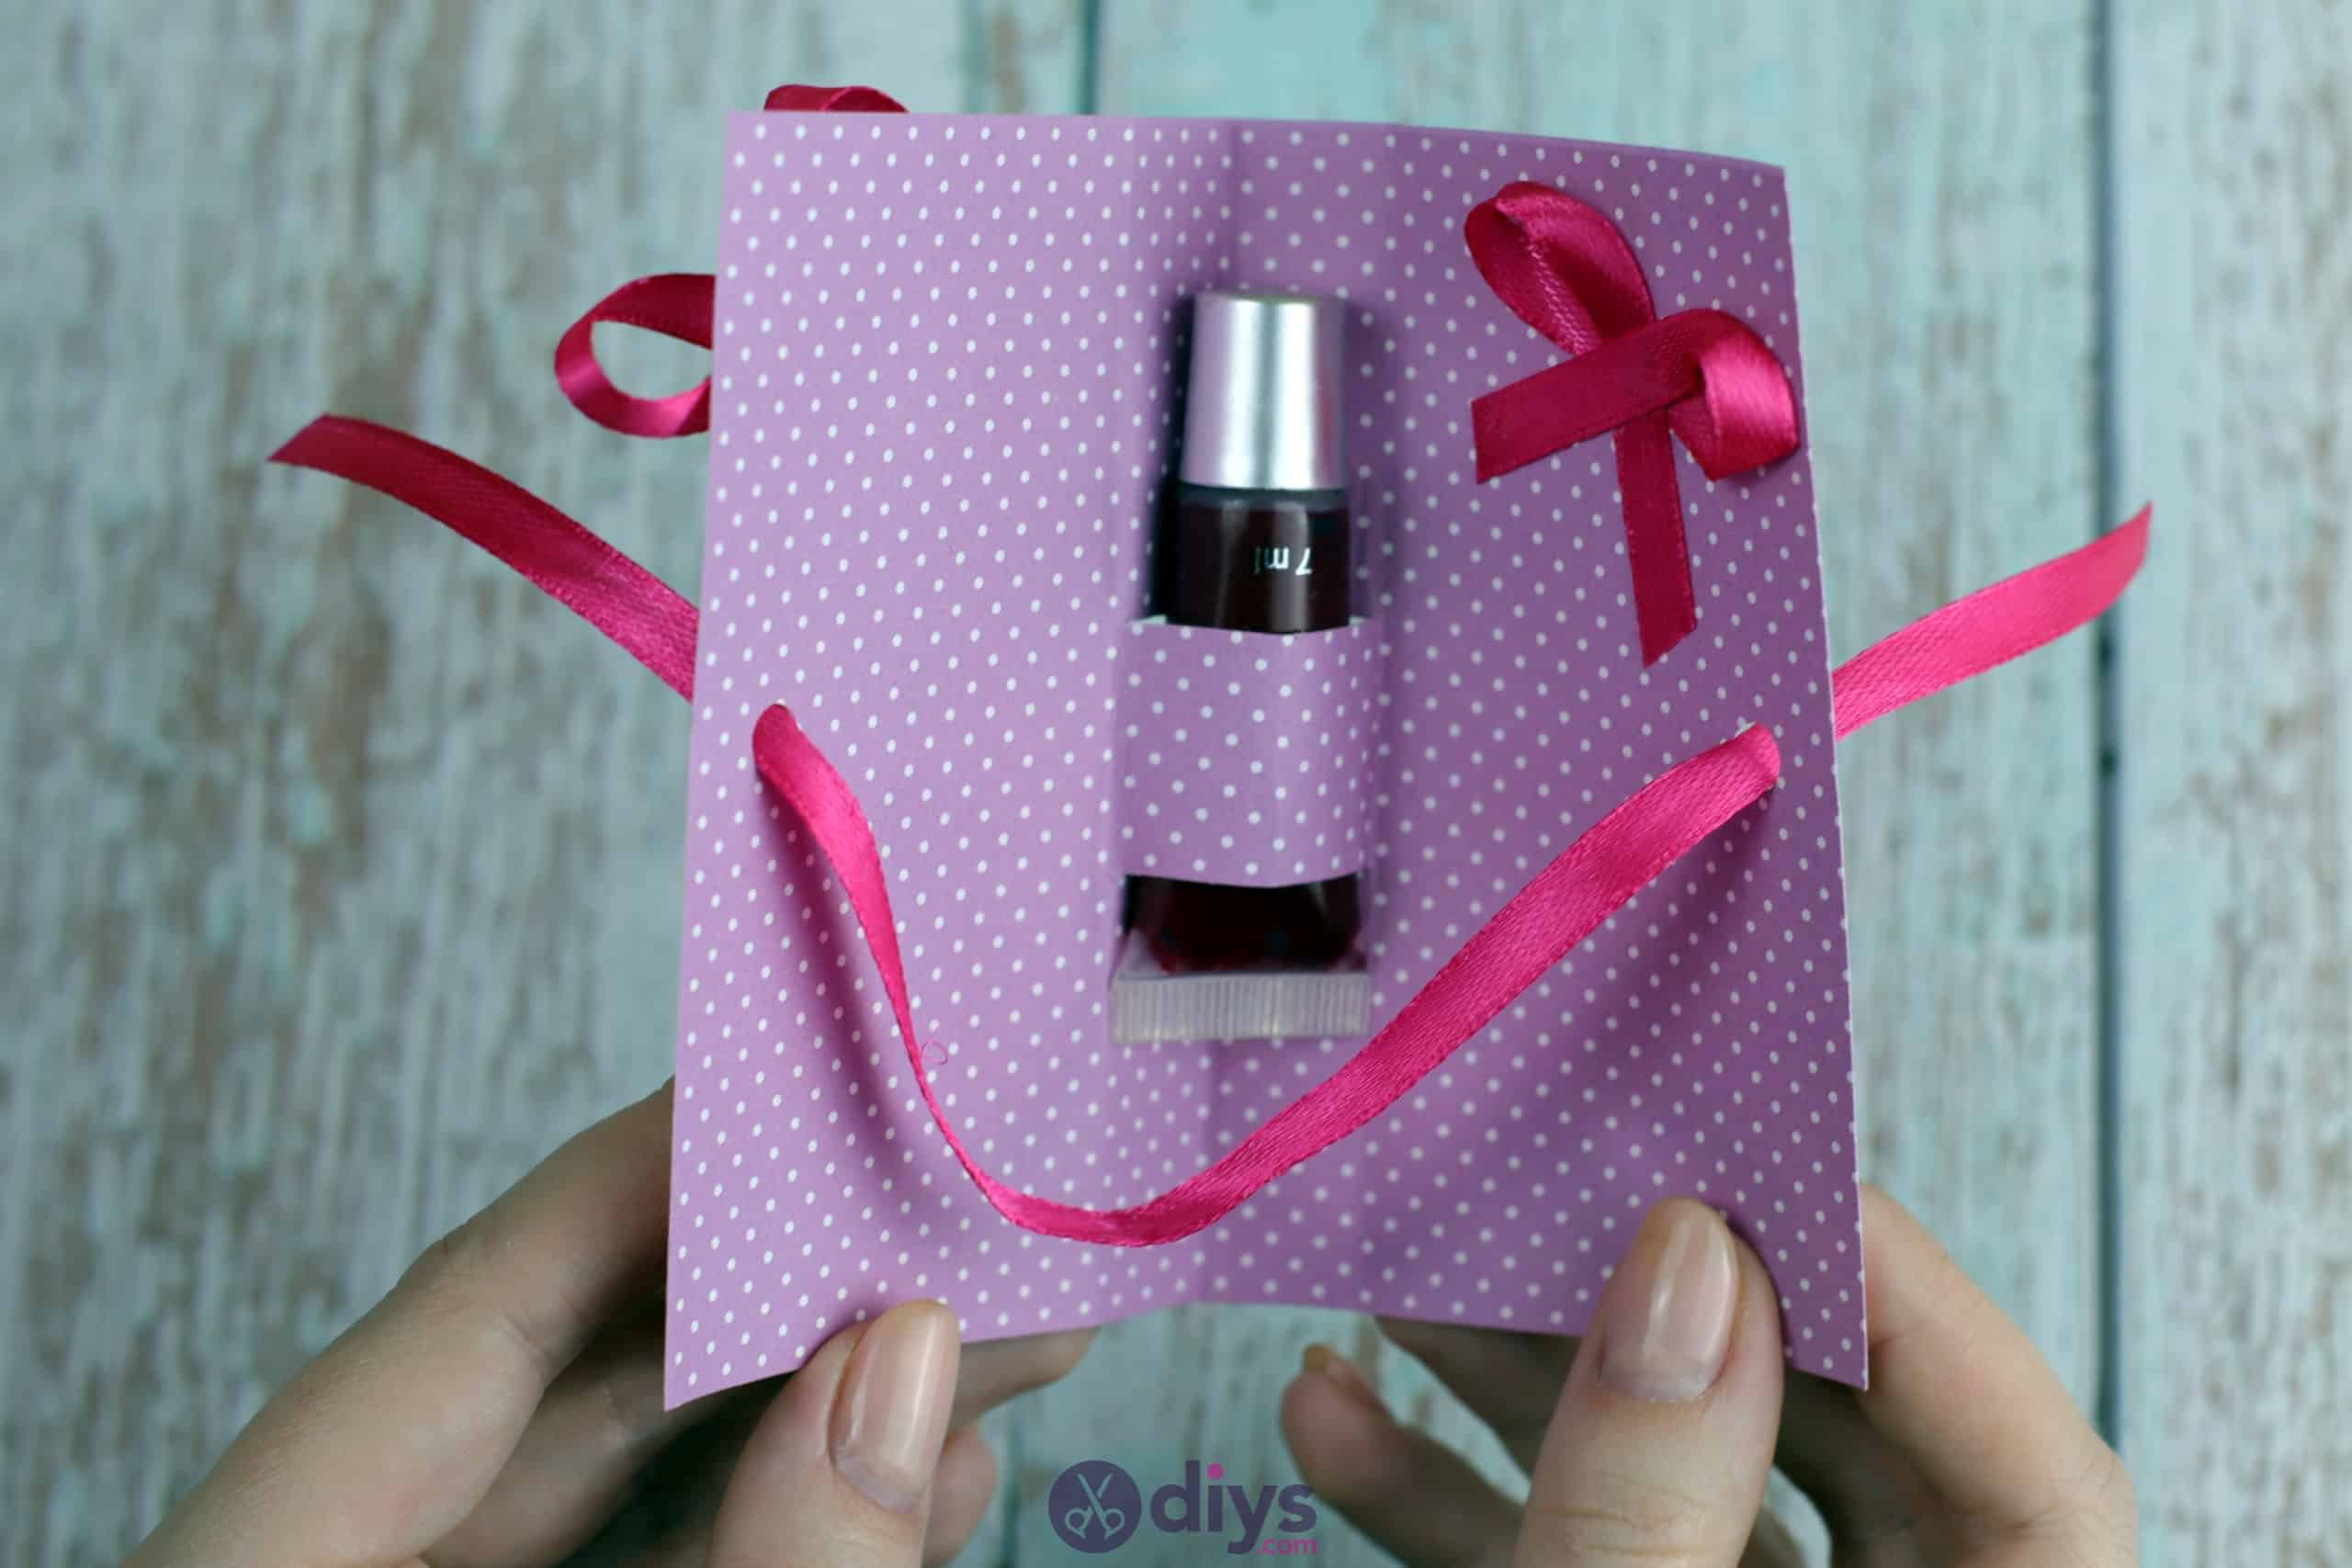 Diy lipstick gift card simple